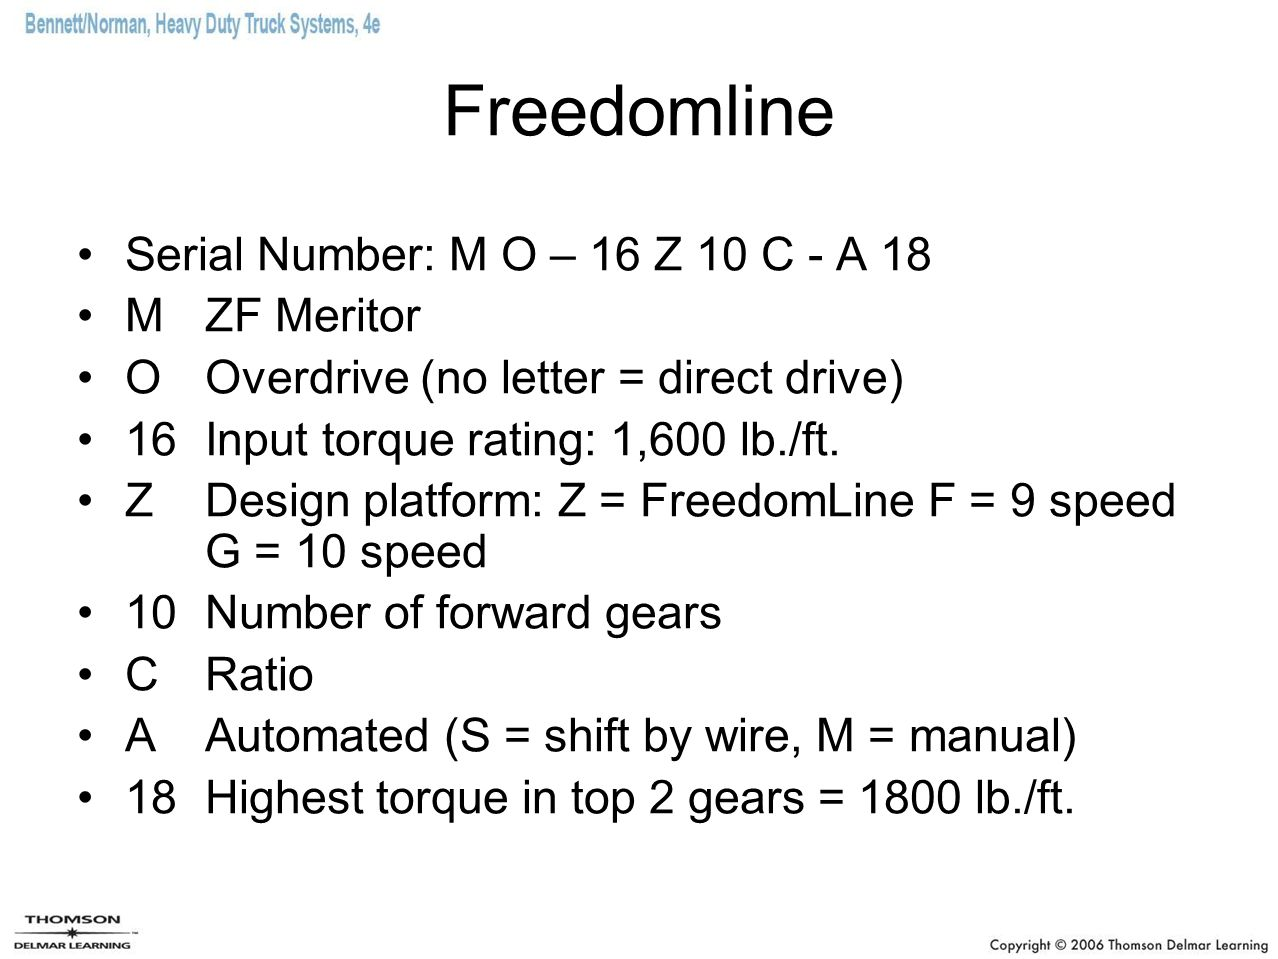 Freedomline Serial Number: M O – 16 Z 10 C - A 18 M ZF Meritor